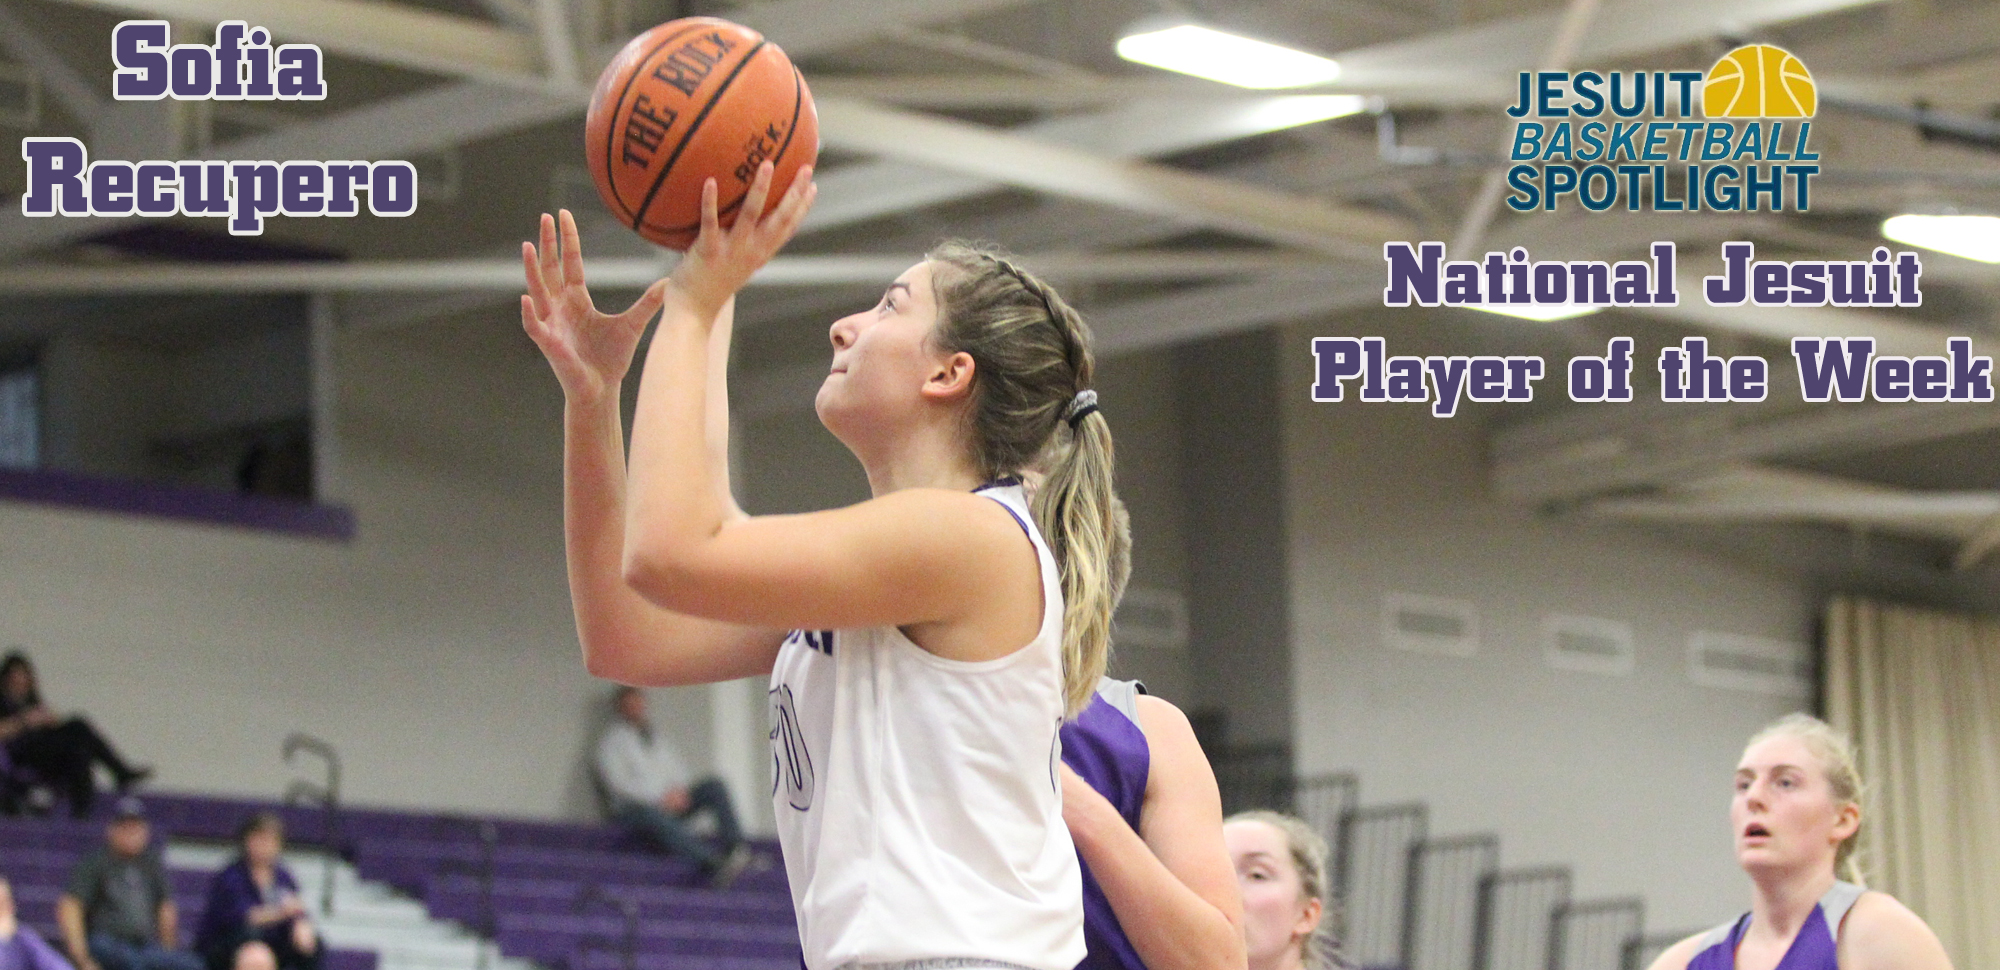 For the first time in her career, junior forward Sophia Recupero was named the National Jesuit Player of the Week on Tuesday night.